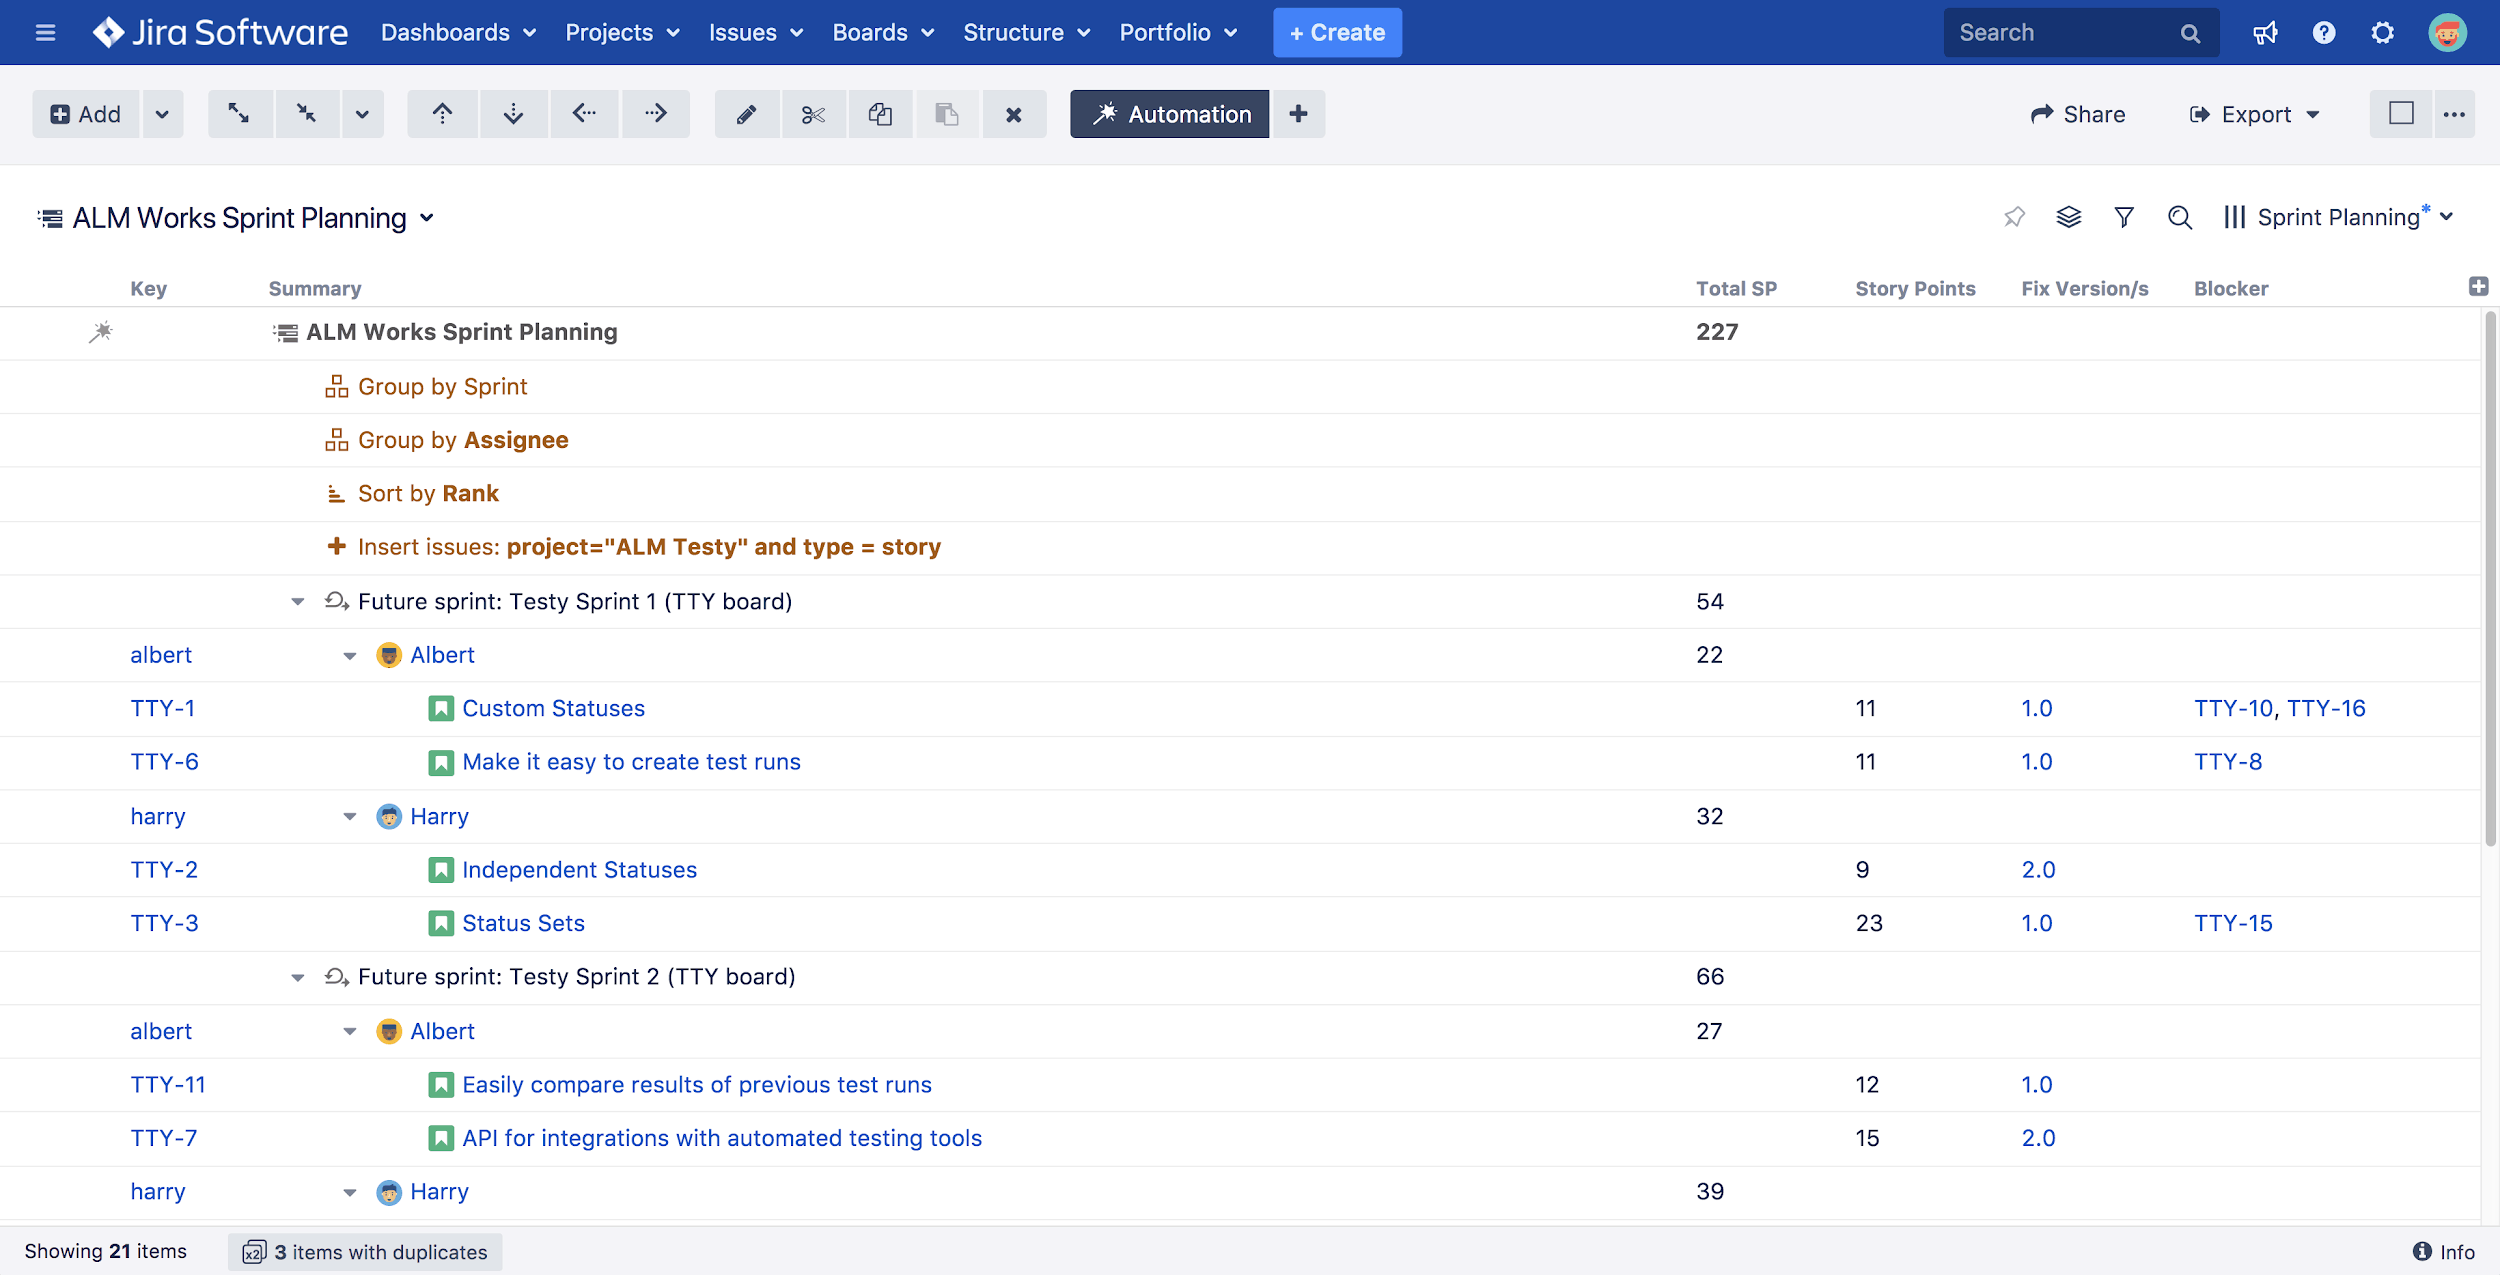 Structure for jira capacity planning